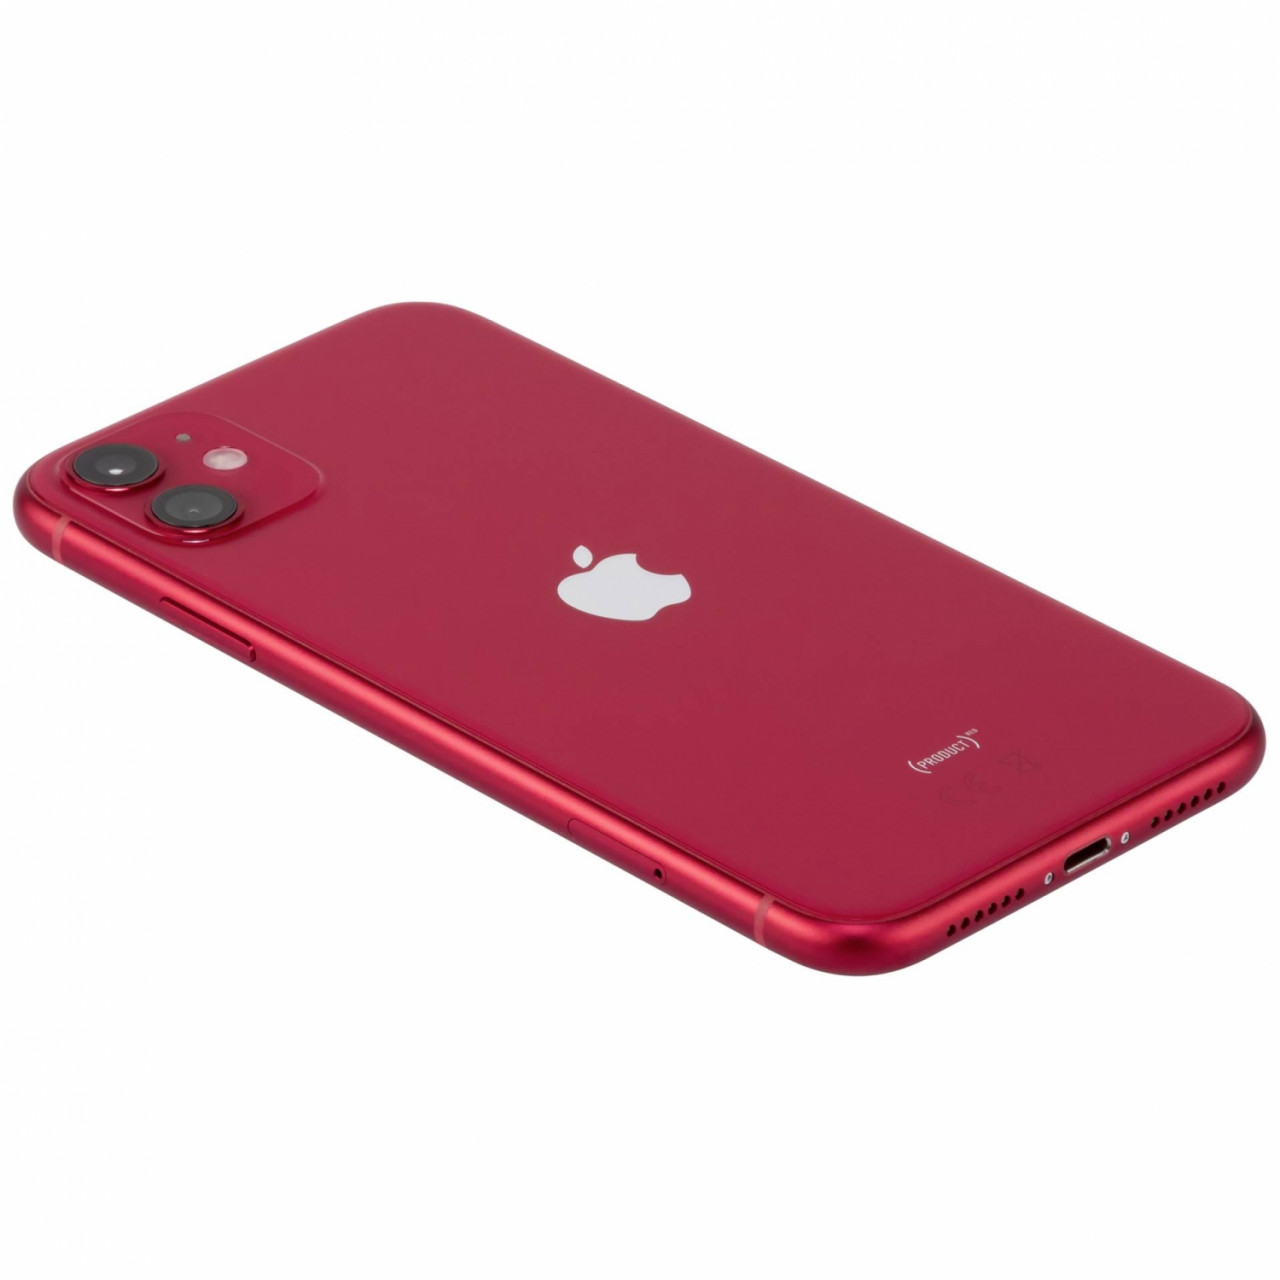 Apple iPhone 11 64GB (PRODUCT)RED MHDD3ZD/A